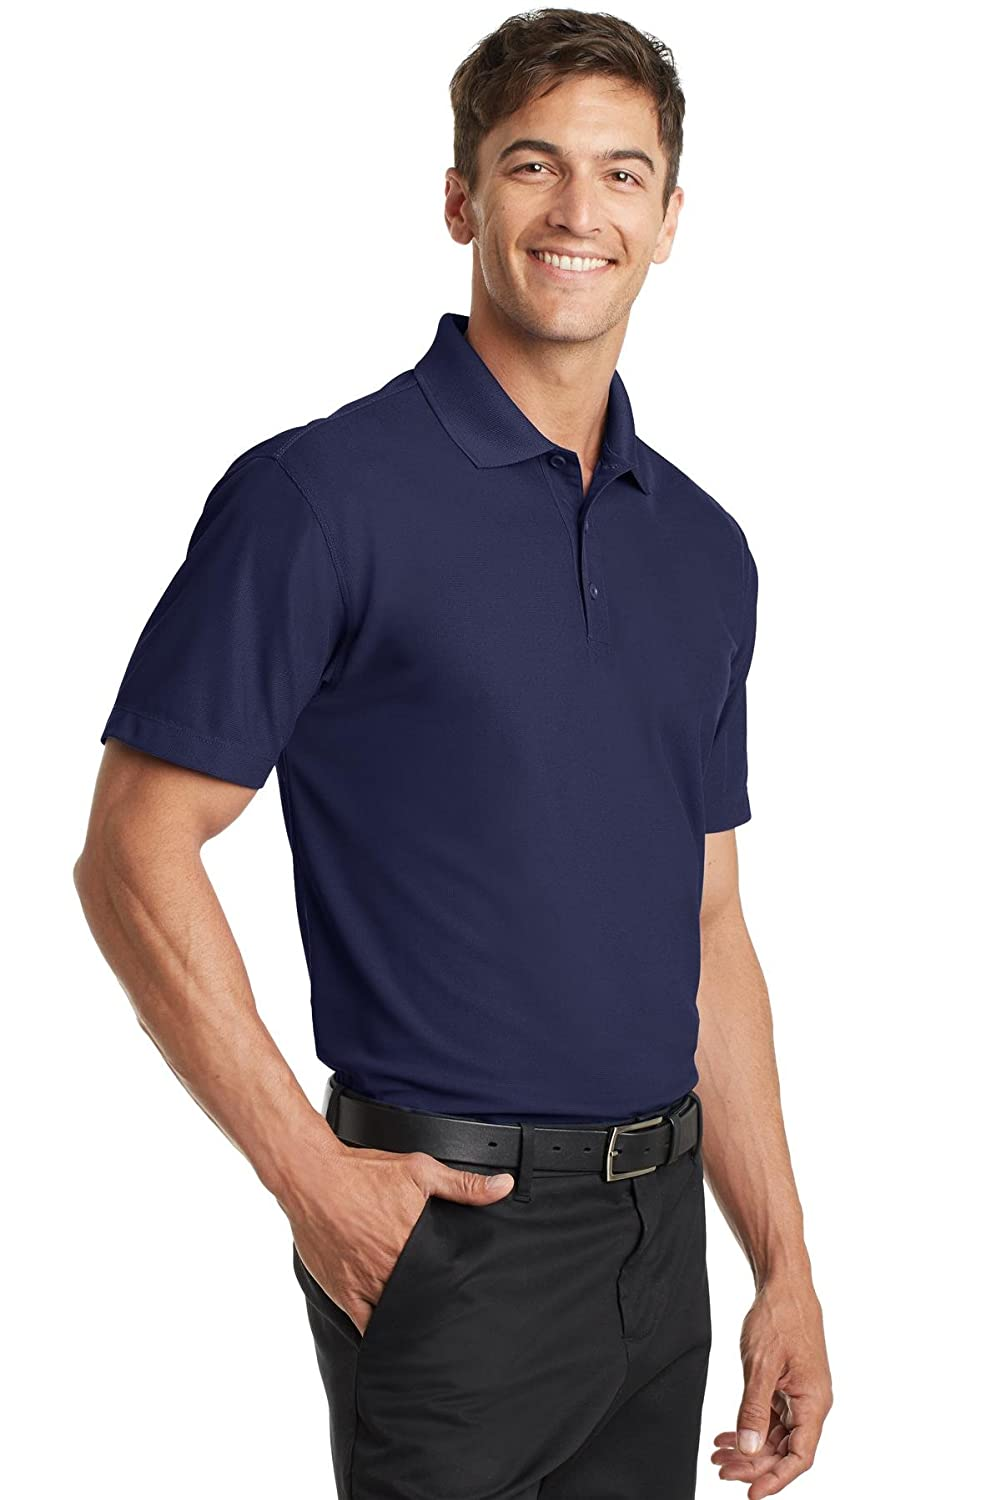 615a7f1f Port Authority Mens Dry Zone Grid Polo K572 -True Navy L at Amazon Men's  Clothing store: